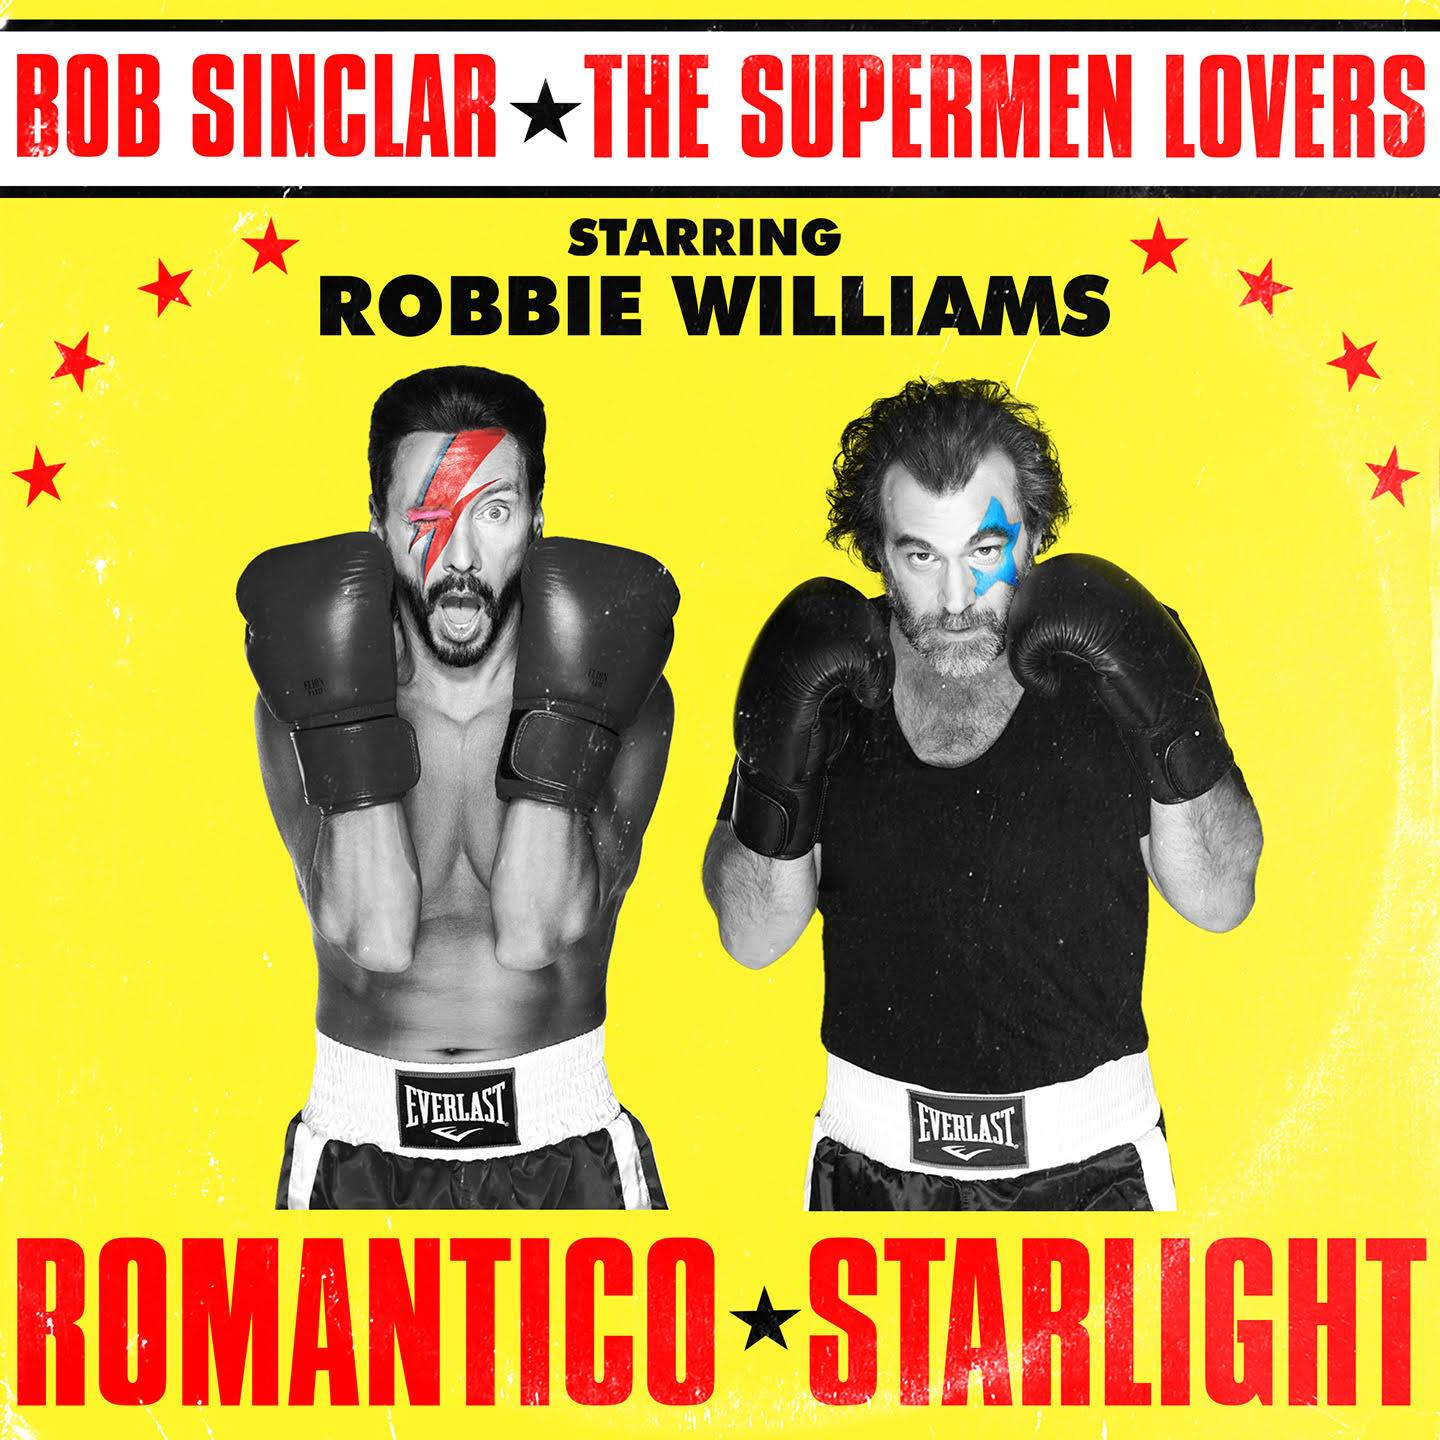 2019 04 23 supermen lovers romantico starlight 2